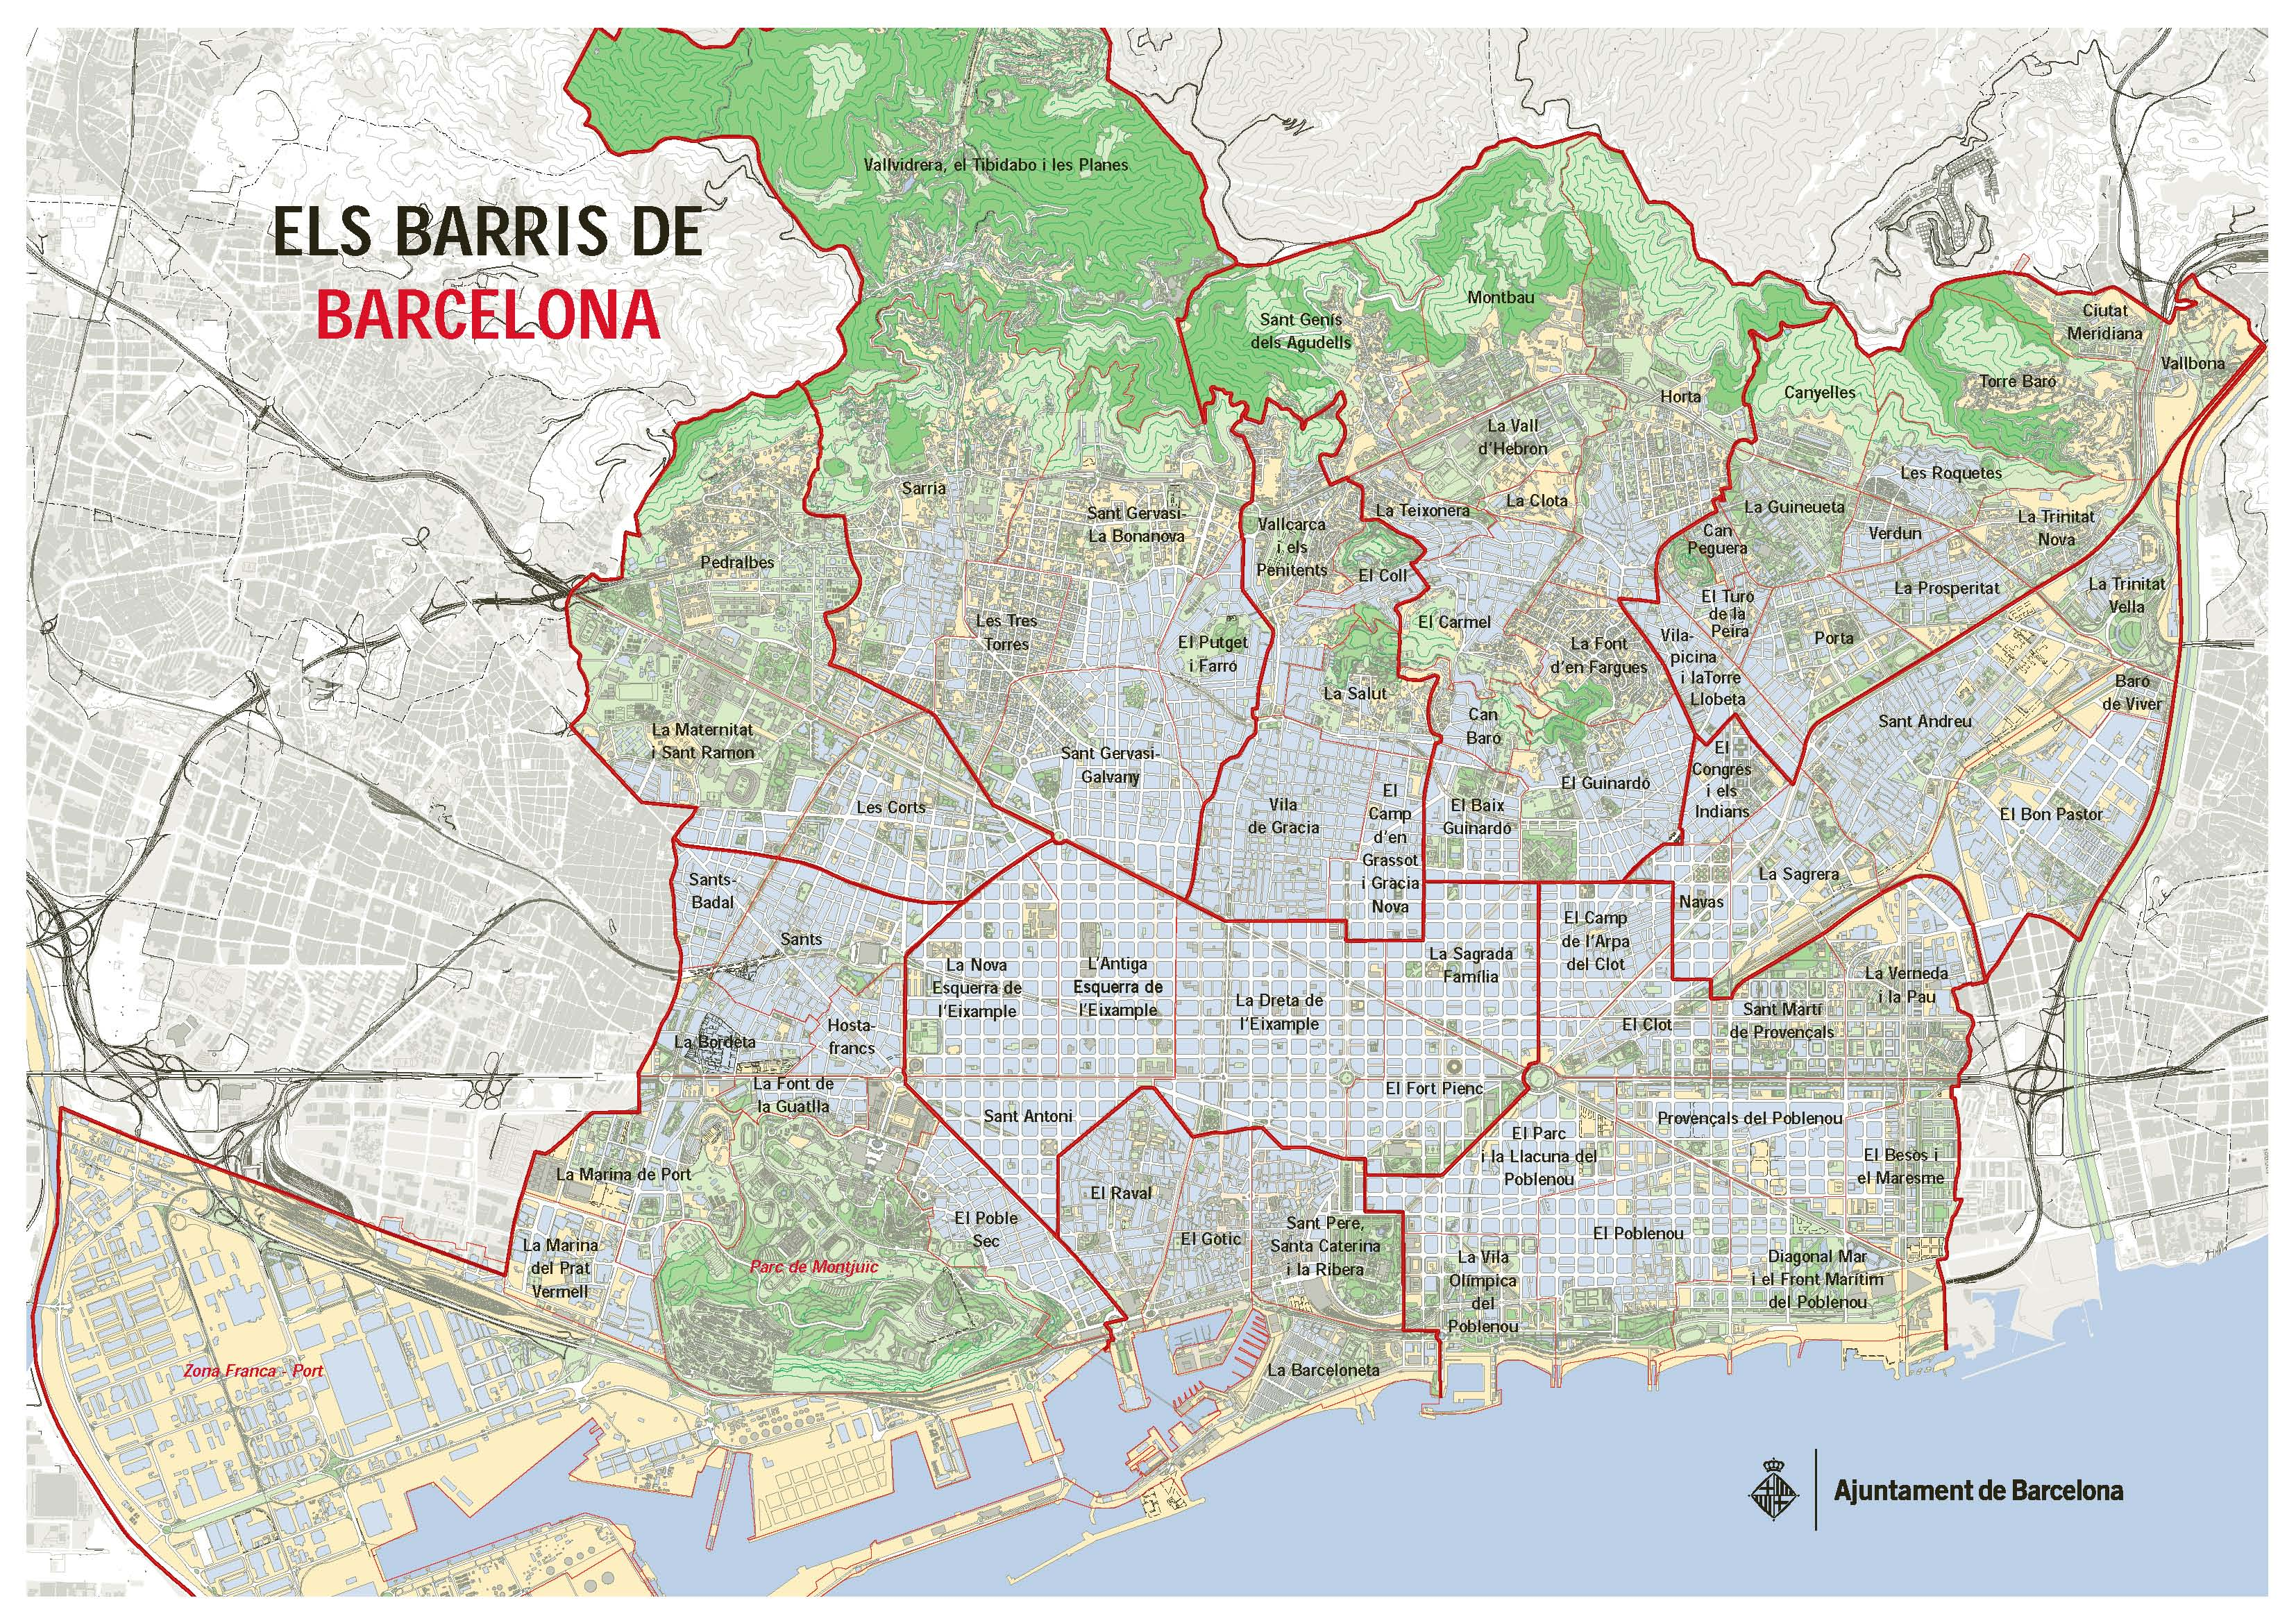 Barcelona District's Mental Health Boards